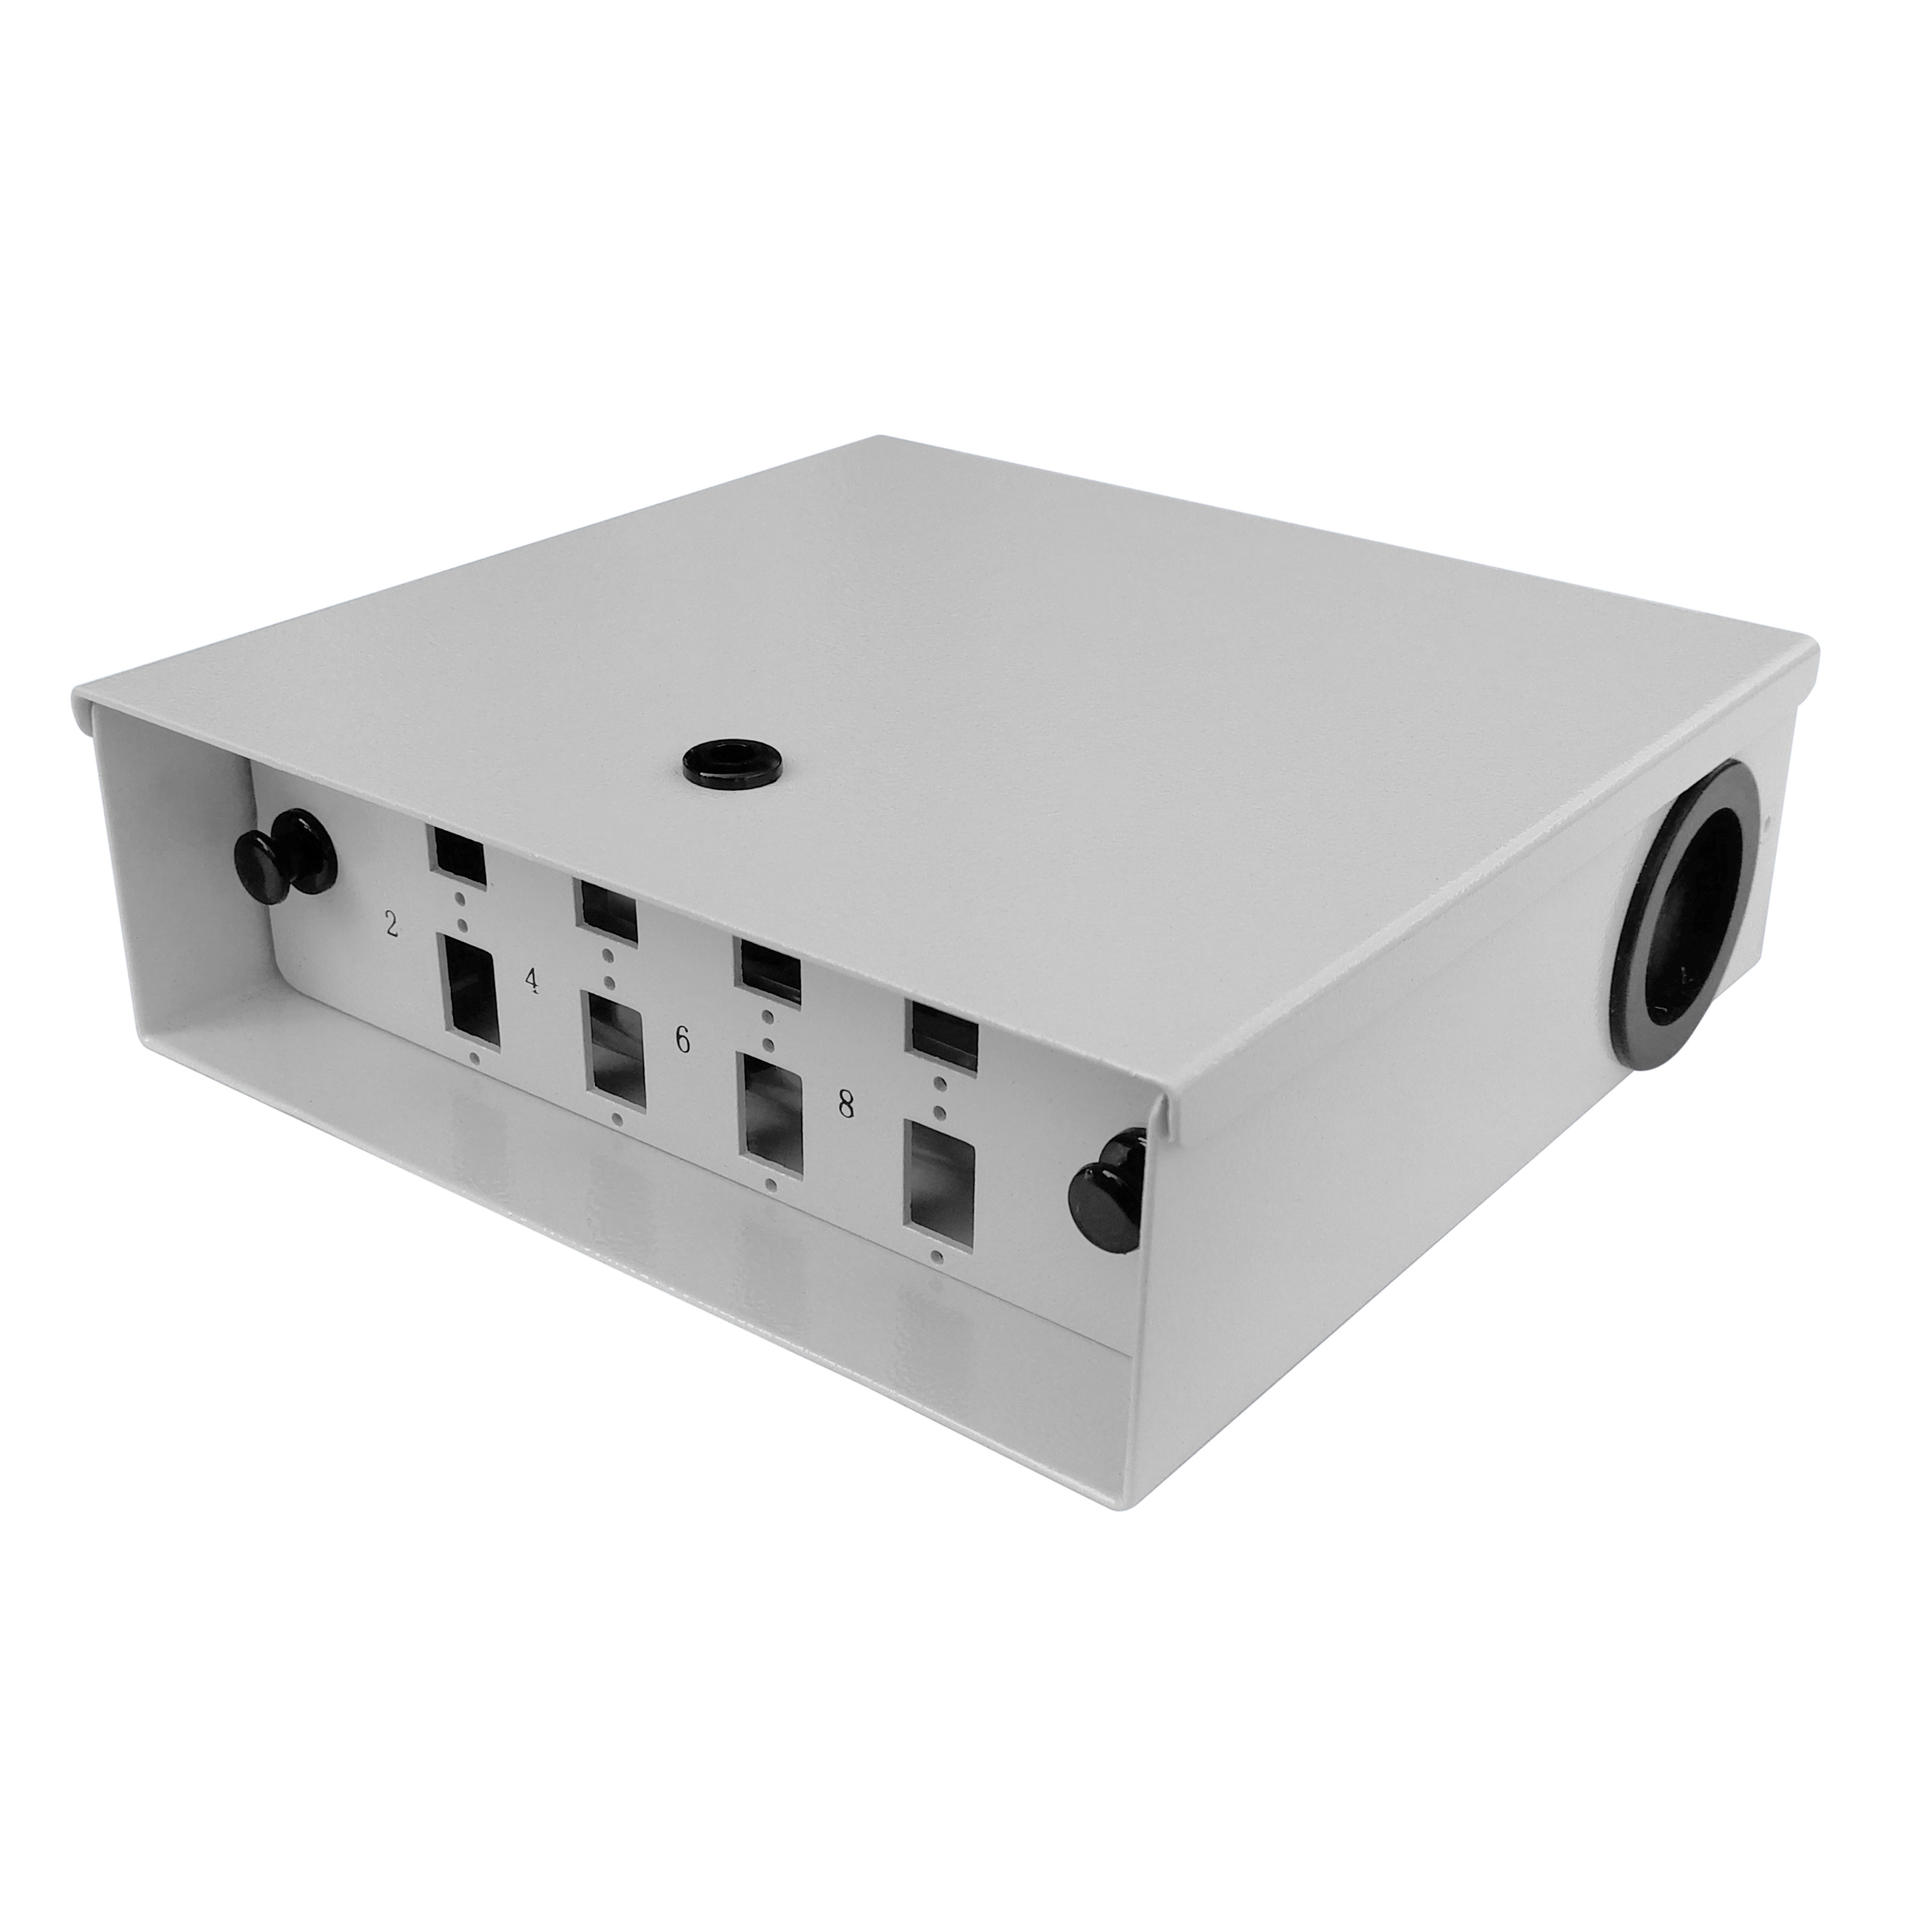 8 Port WODF Fiber Optic Distribution Box, SC Simplex